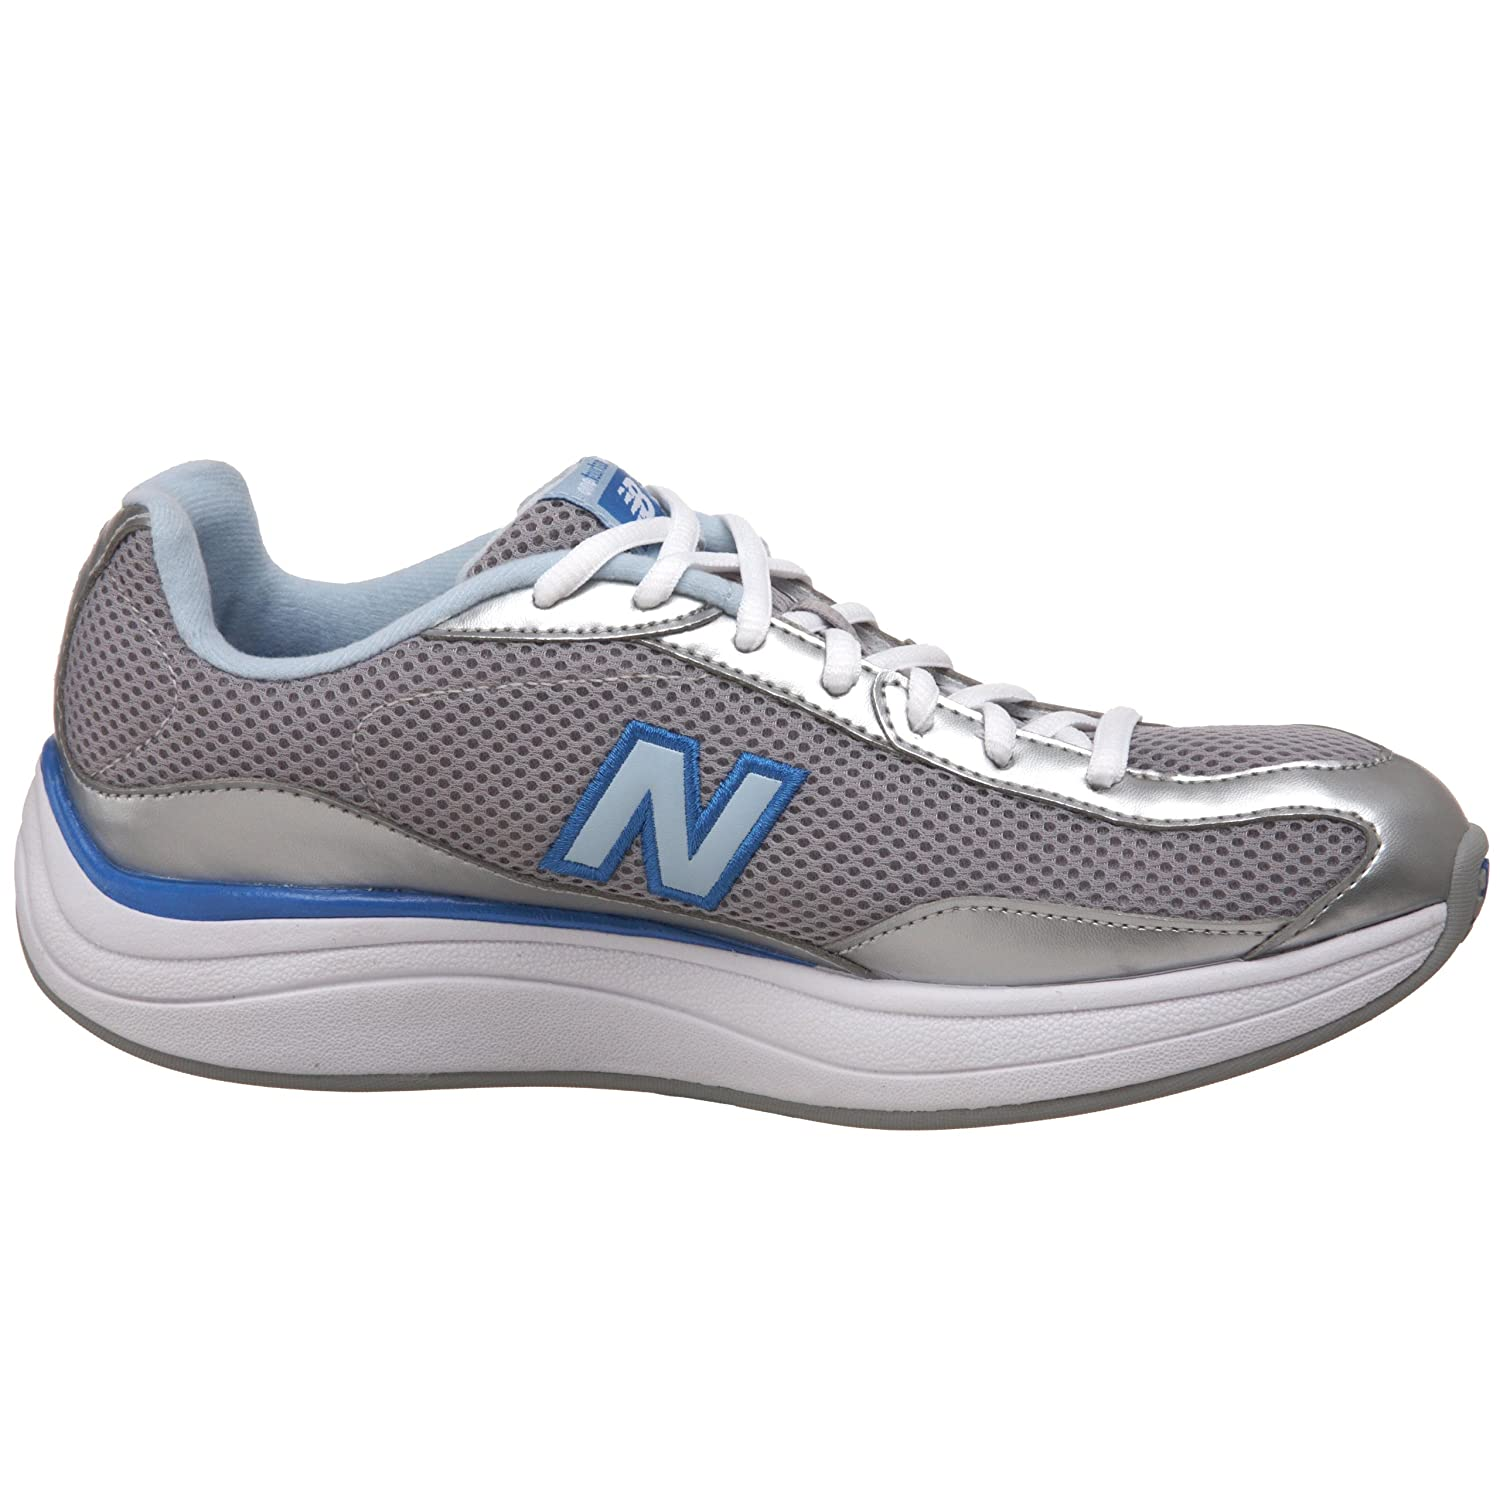 afb04178e4f55 ... discount code for netherlands amazon new balance womens ww1442 rock  tone shoe silver blue 5 b